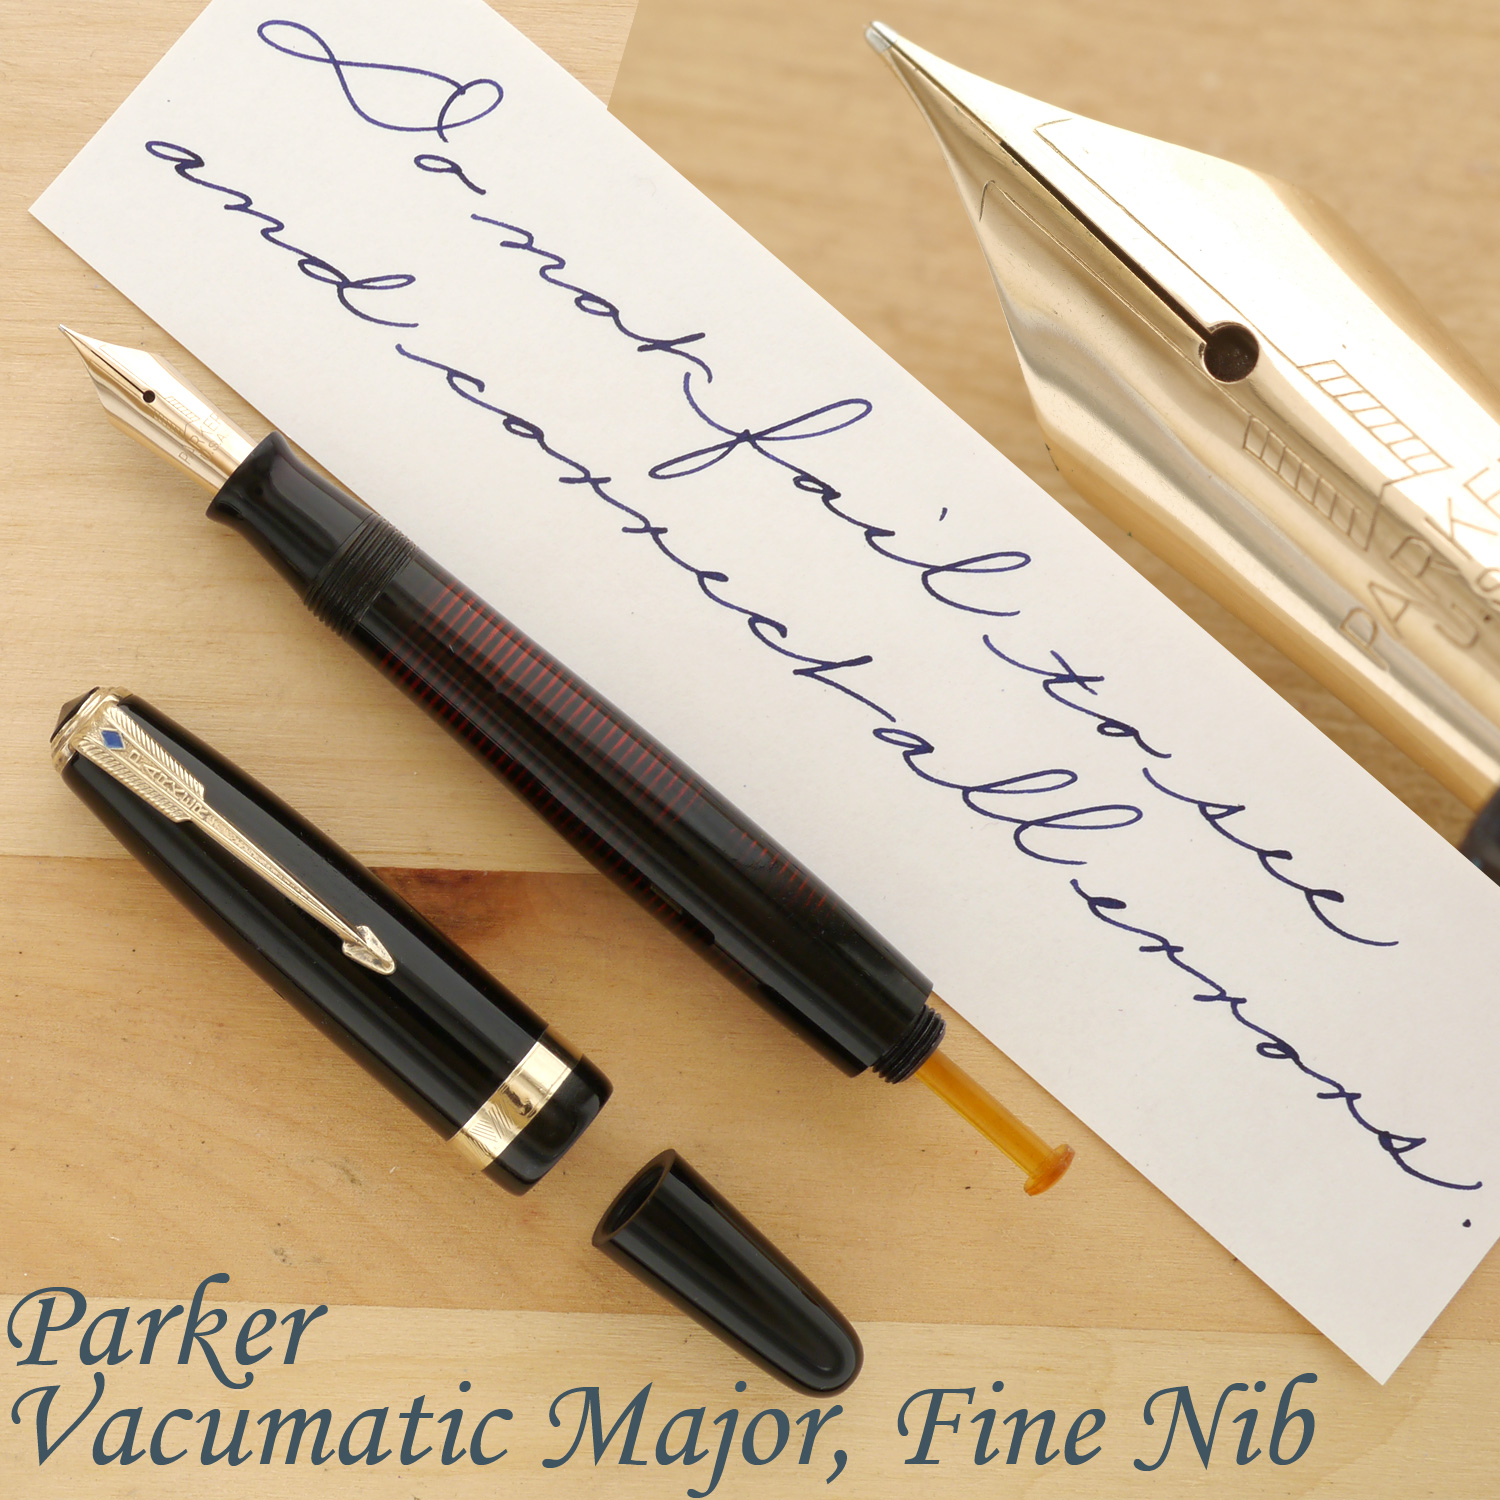 Parker Vacumatic Major Fountain Pen, Black, F, uncapped, with the blind cap removed